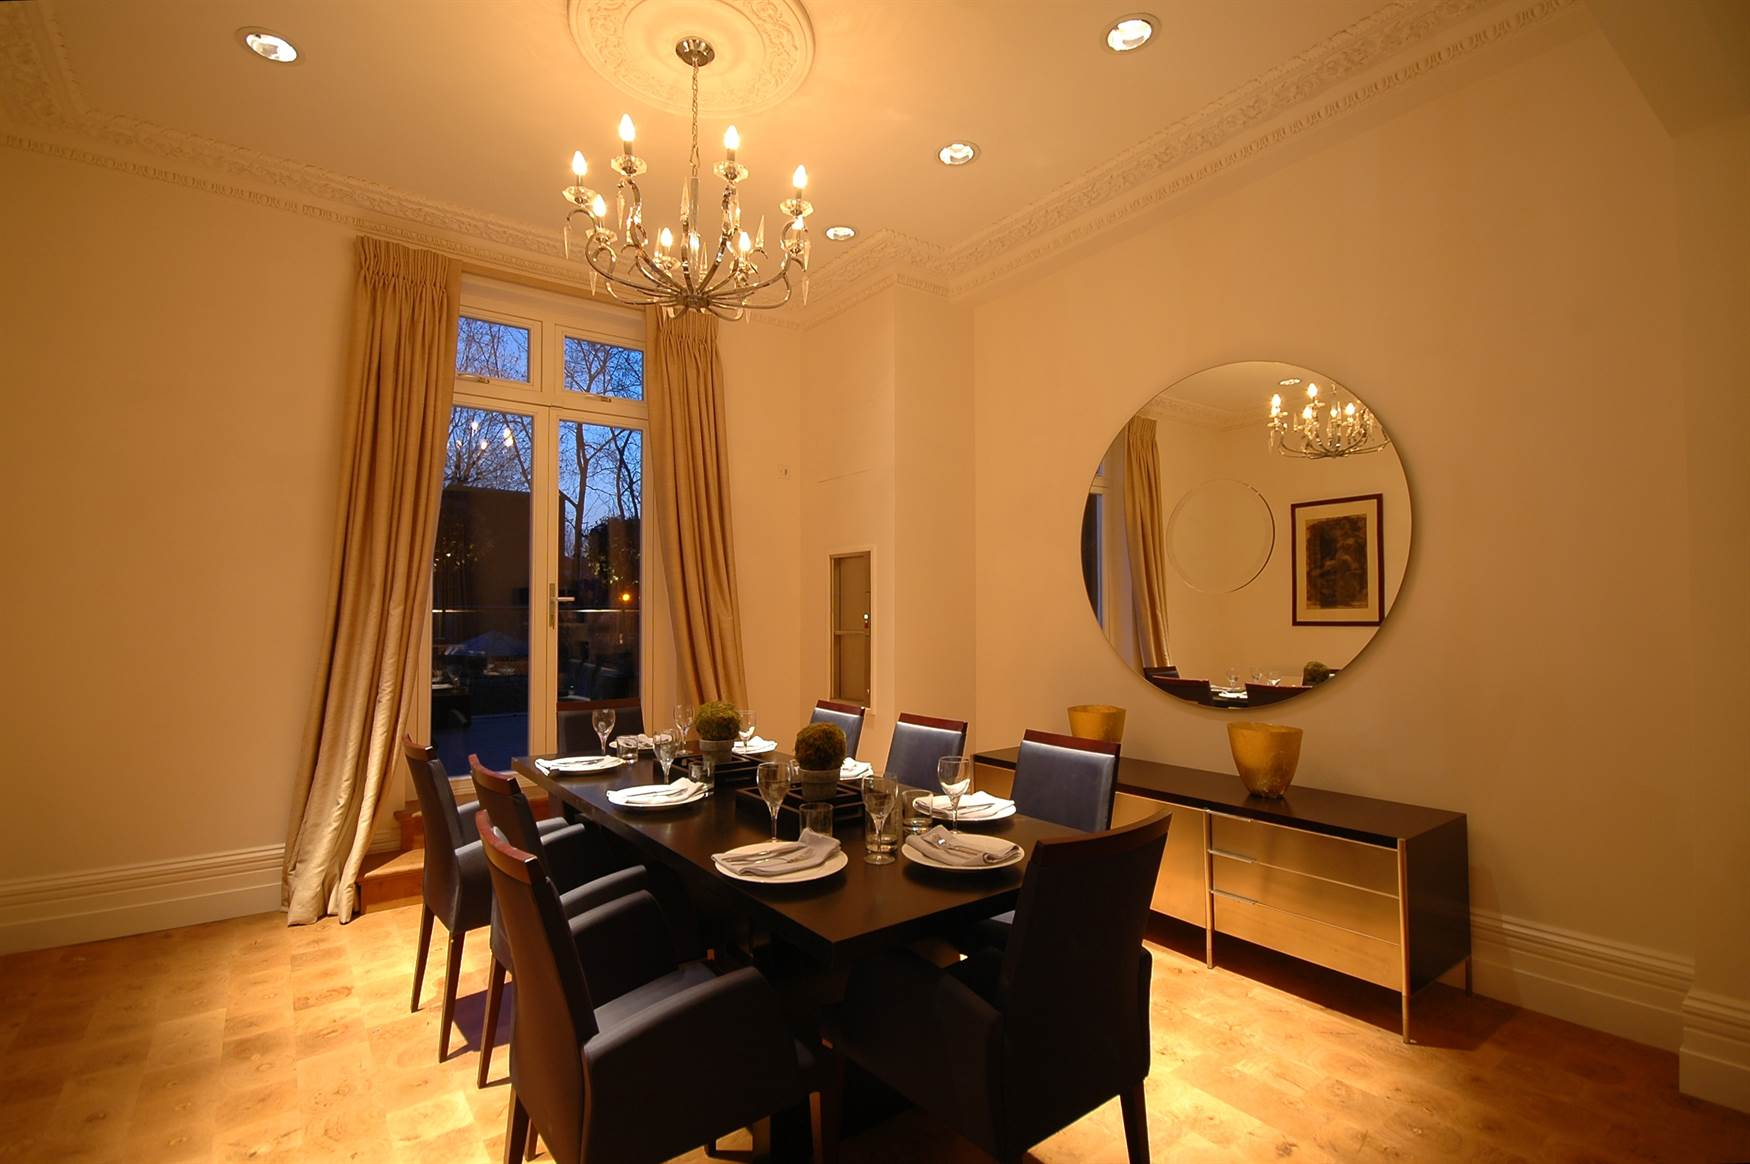 Chandeliers in dining room